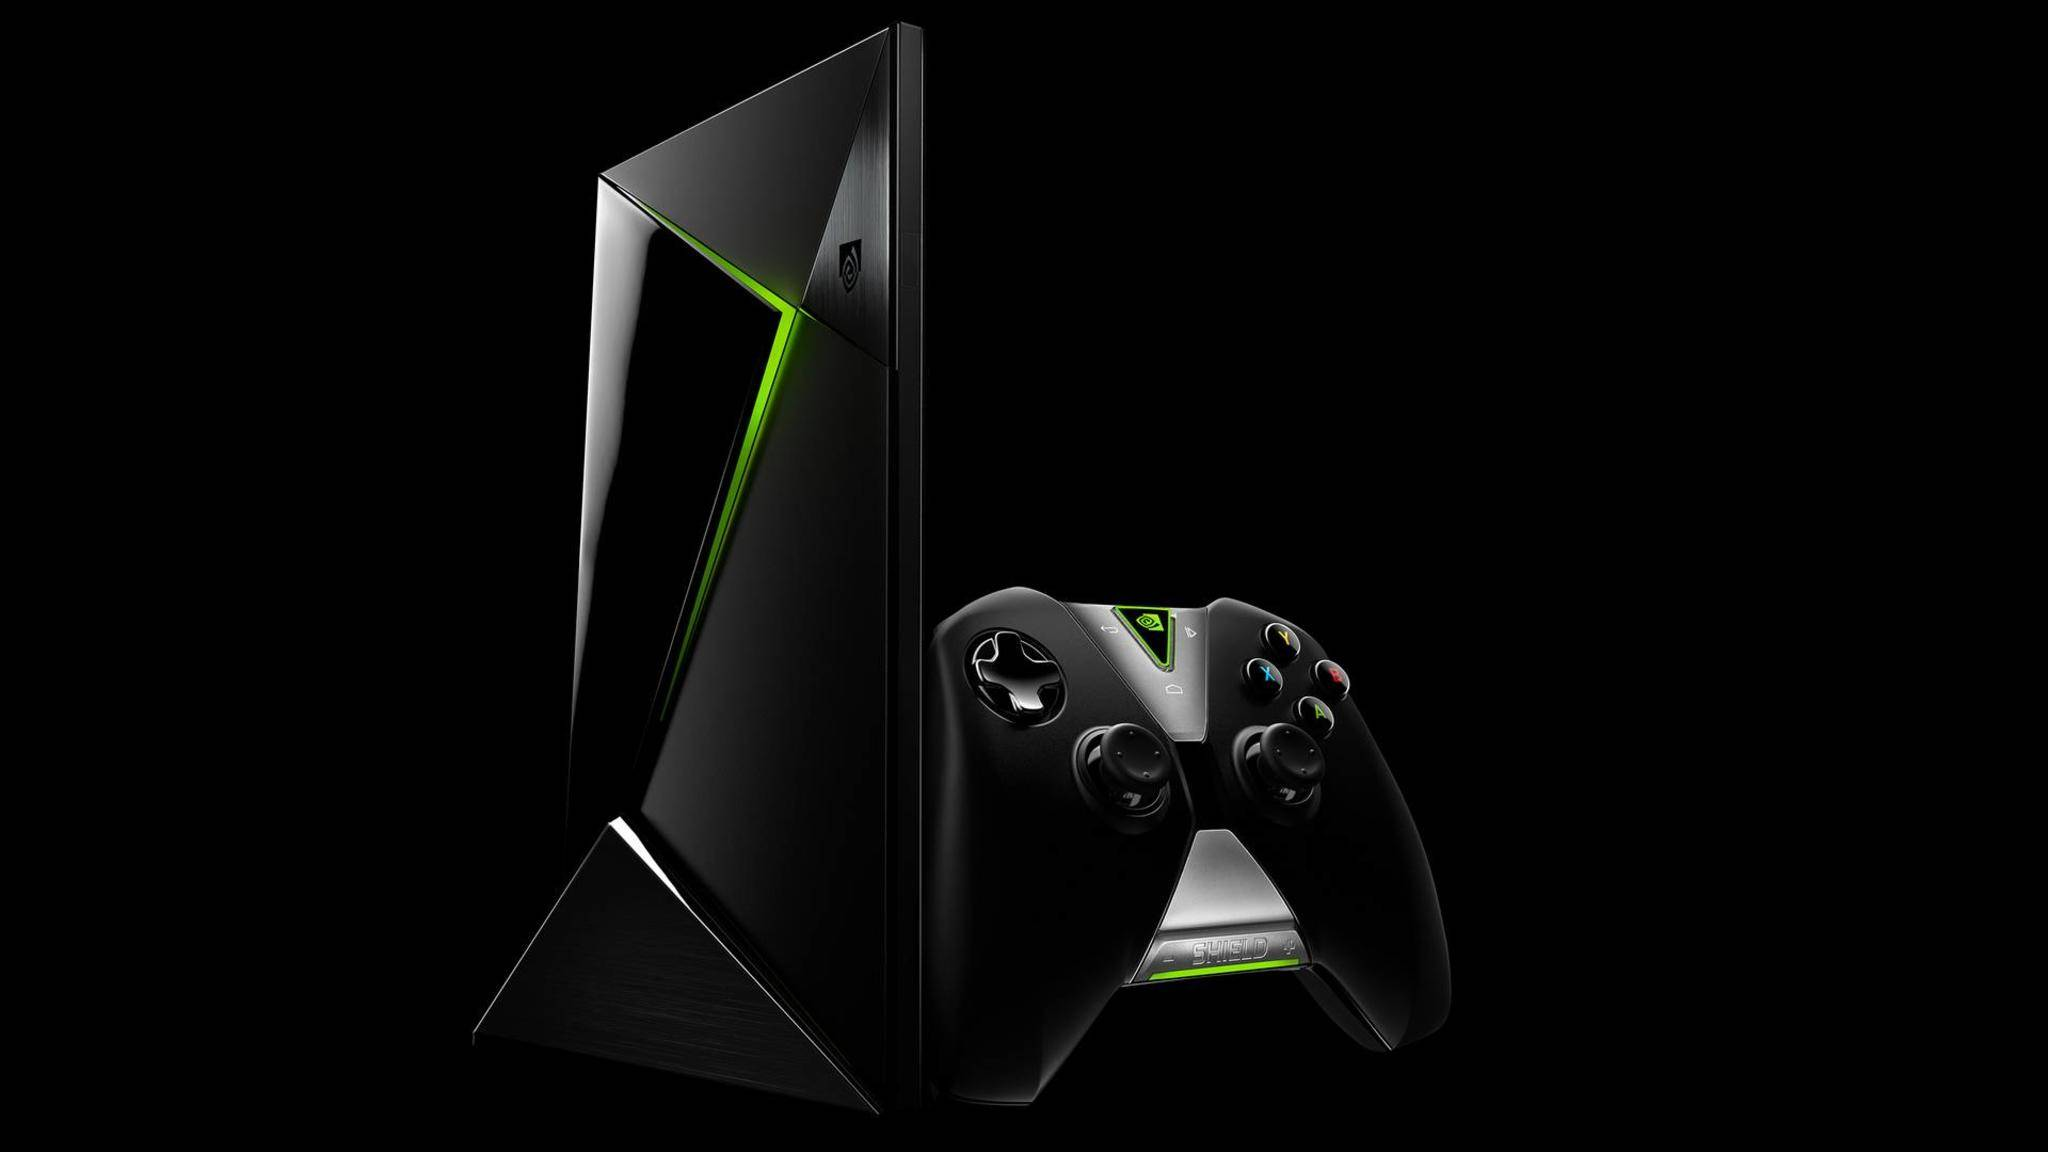 Die Set-Top-Box Nvidia Shield TV erhält Android 7.0.